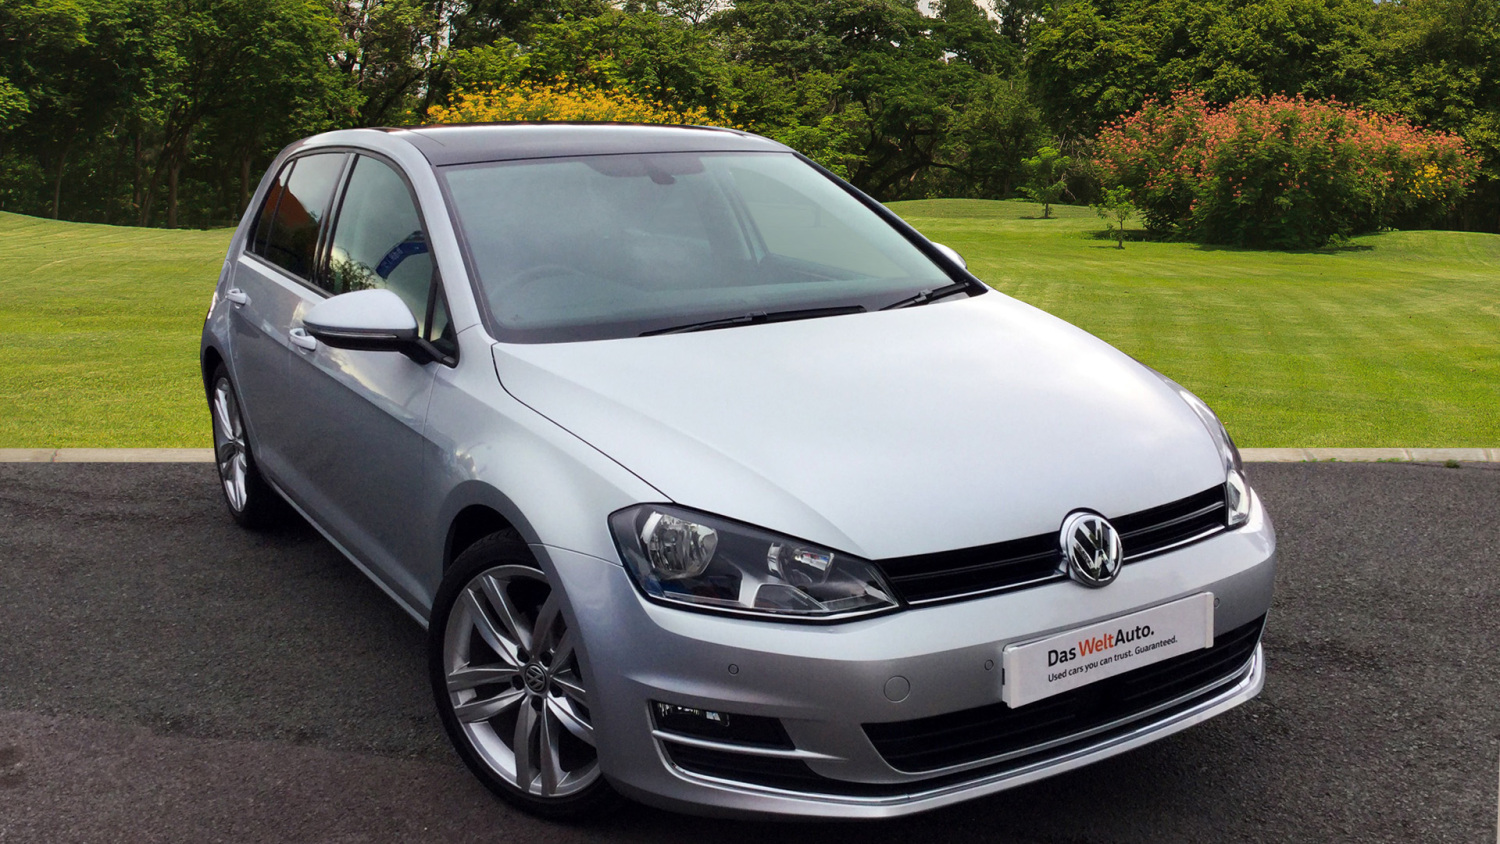 used volkswagen golf 1 4 tsi 150 gt edition 5dr dsg petrol hatchback for sale bristol street. Black Bedroom Furniture Sets. Home Design Ideas